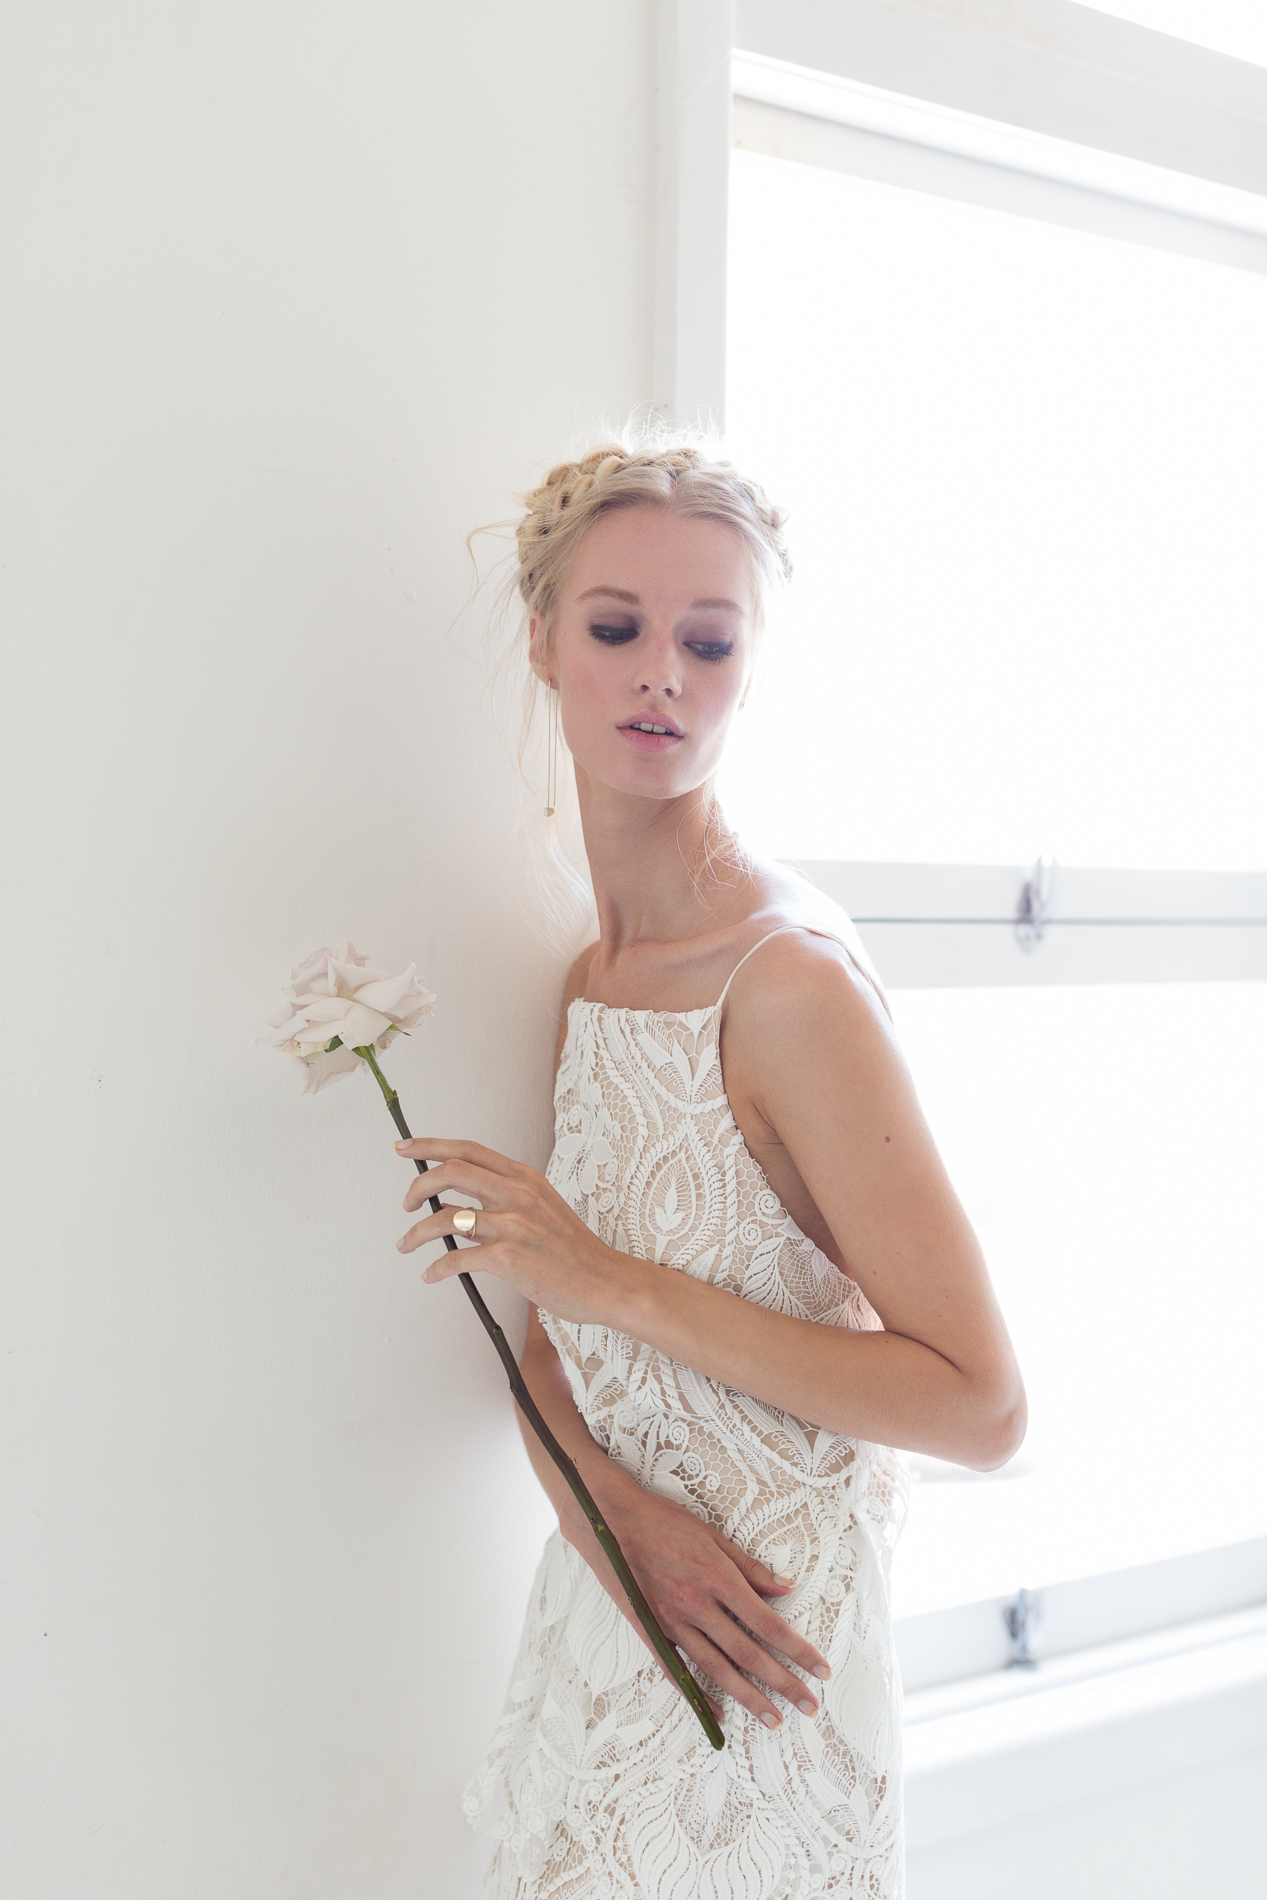 Modern Silk Gowns & Floral Wall Inspiration For The Hip Bride | Anastasia Fua elliftheartist 49